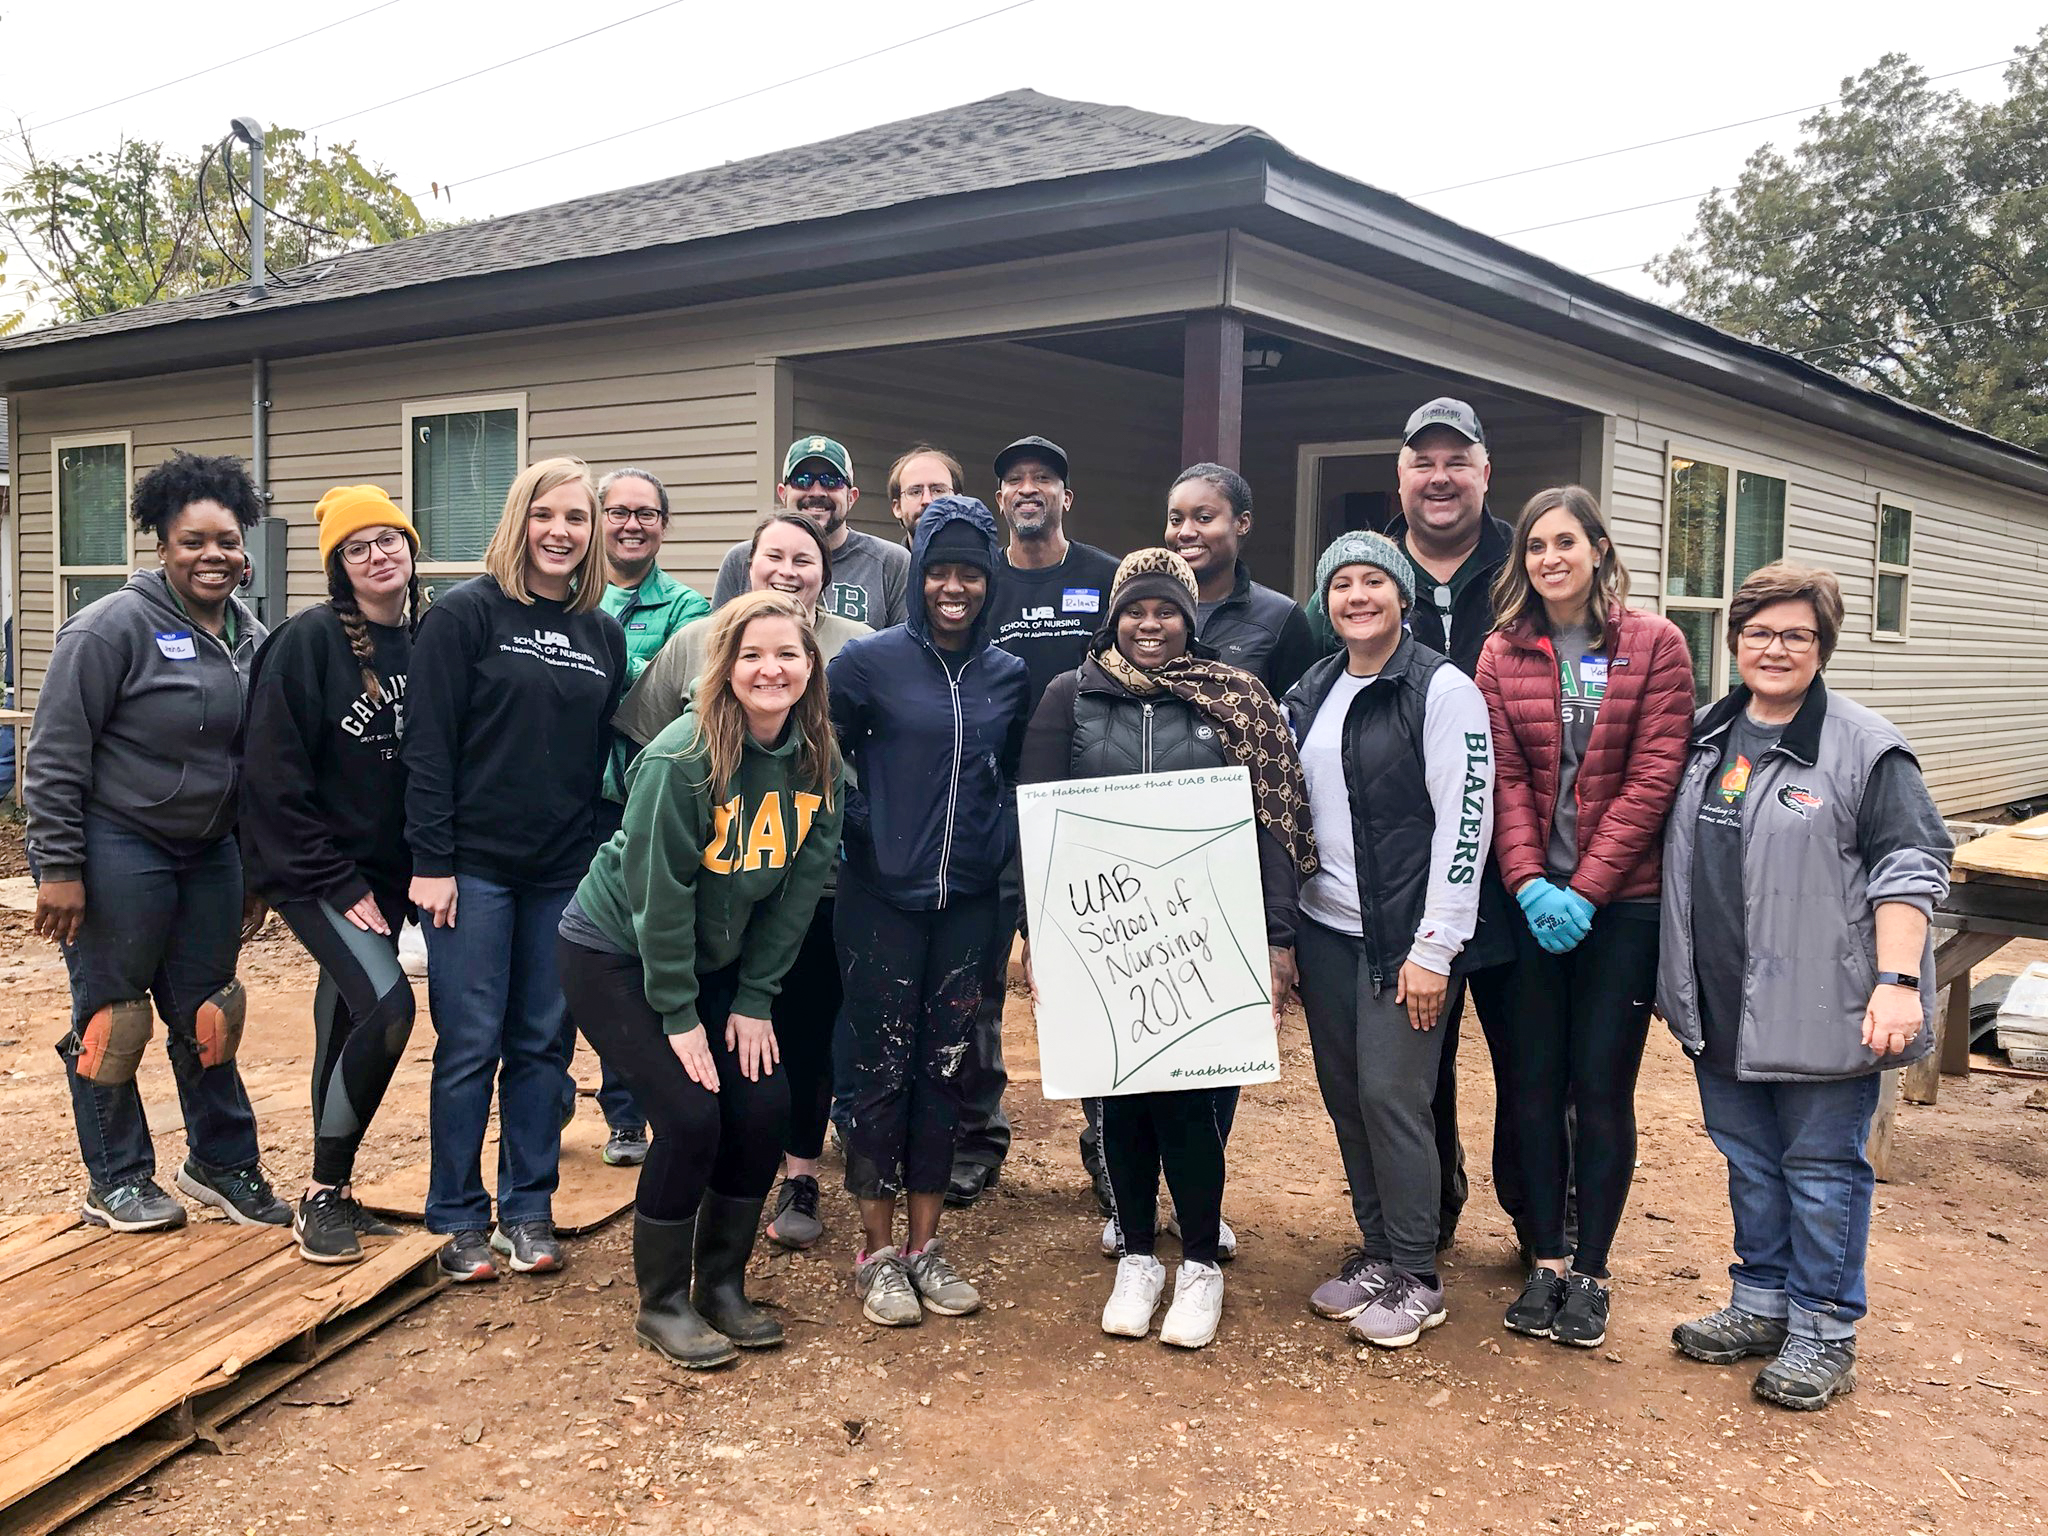 Habitat for Humanity UAB 1